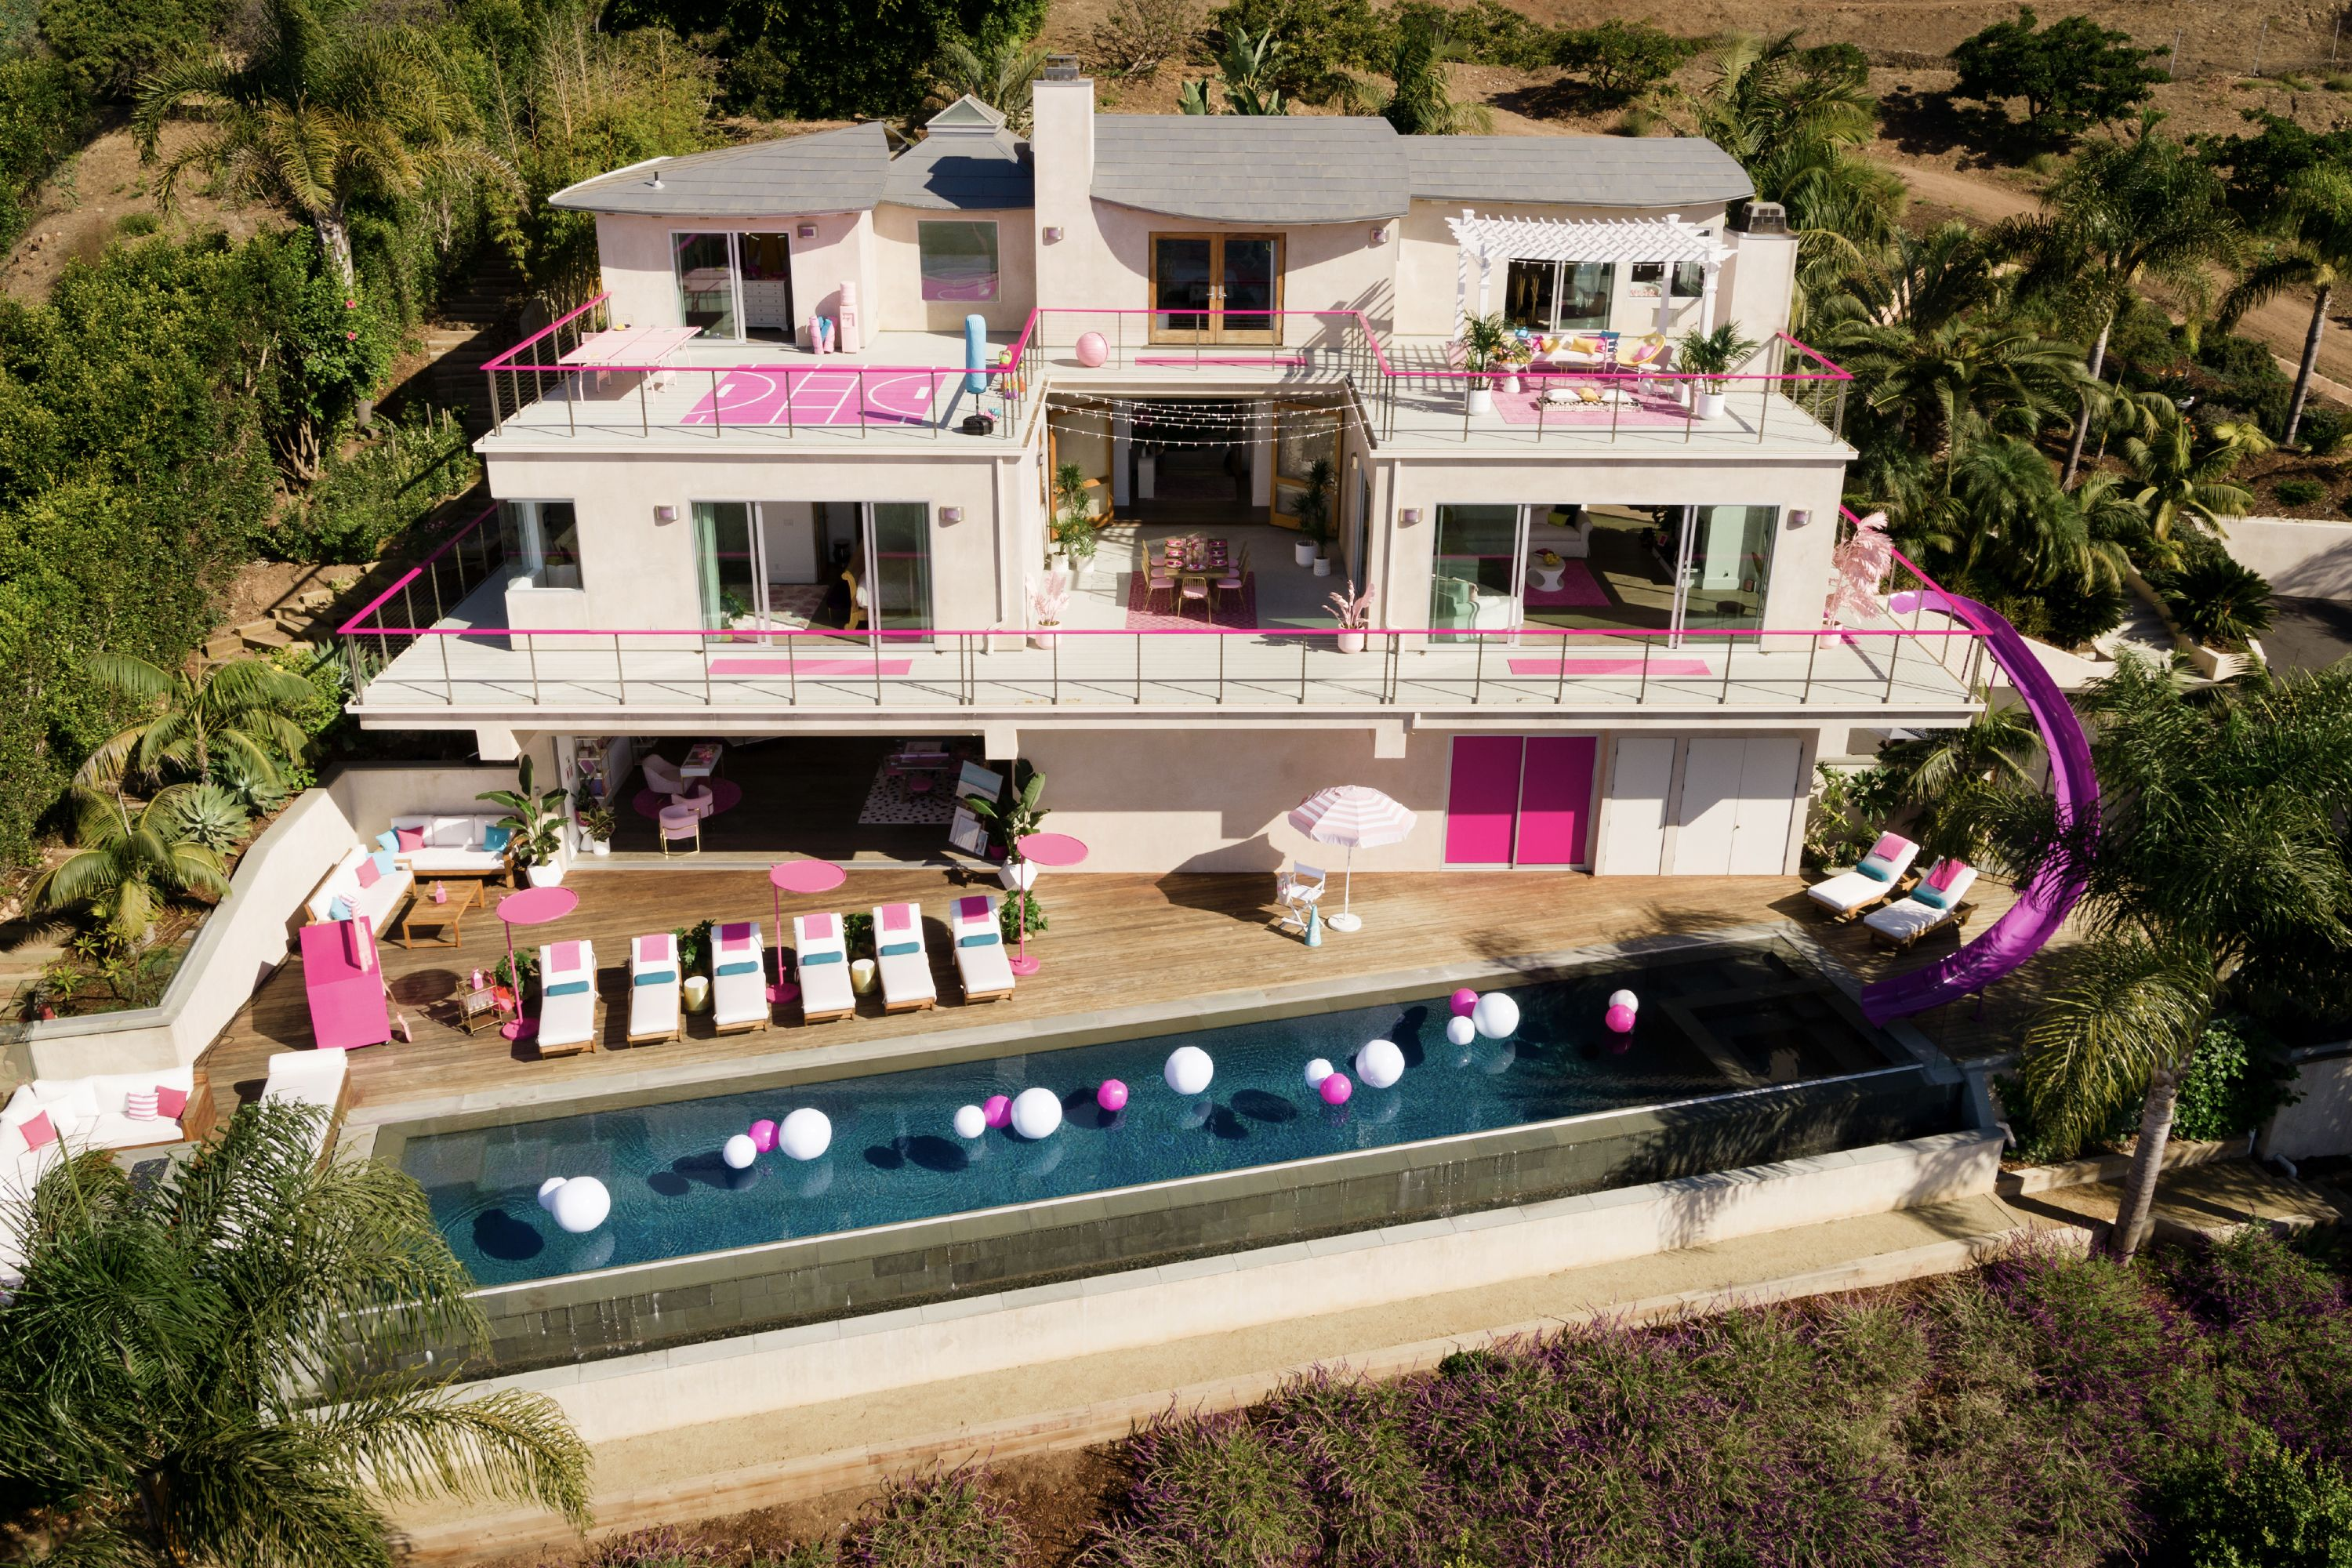 You Can Now Officially Rent Barbie's Malibu Dreamhouse on Airbnb